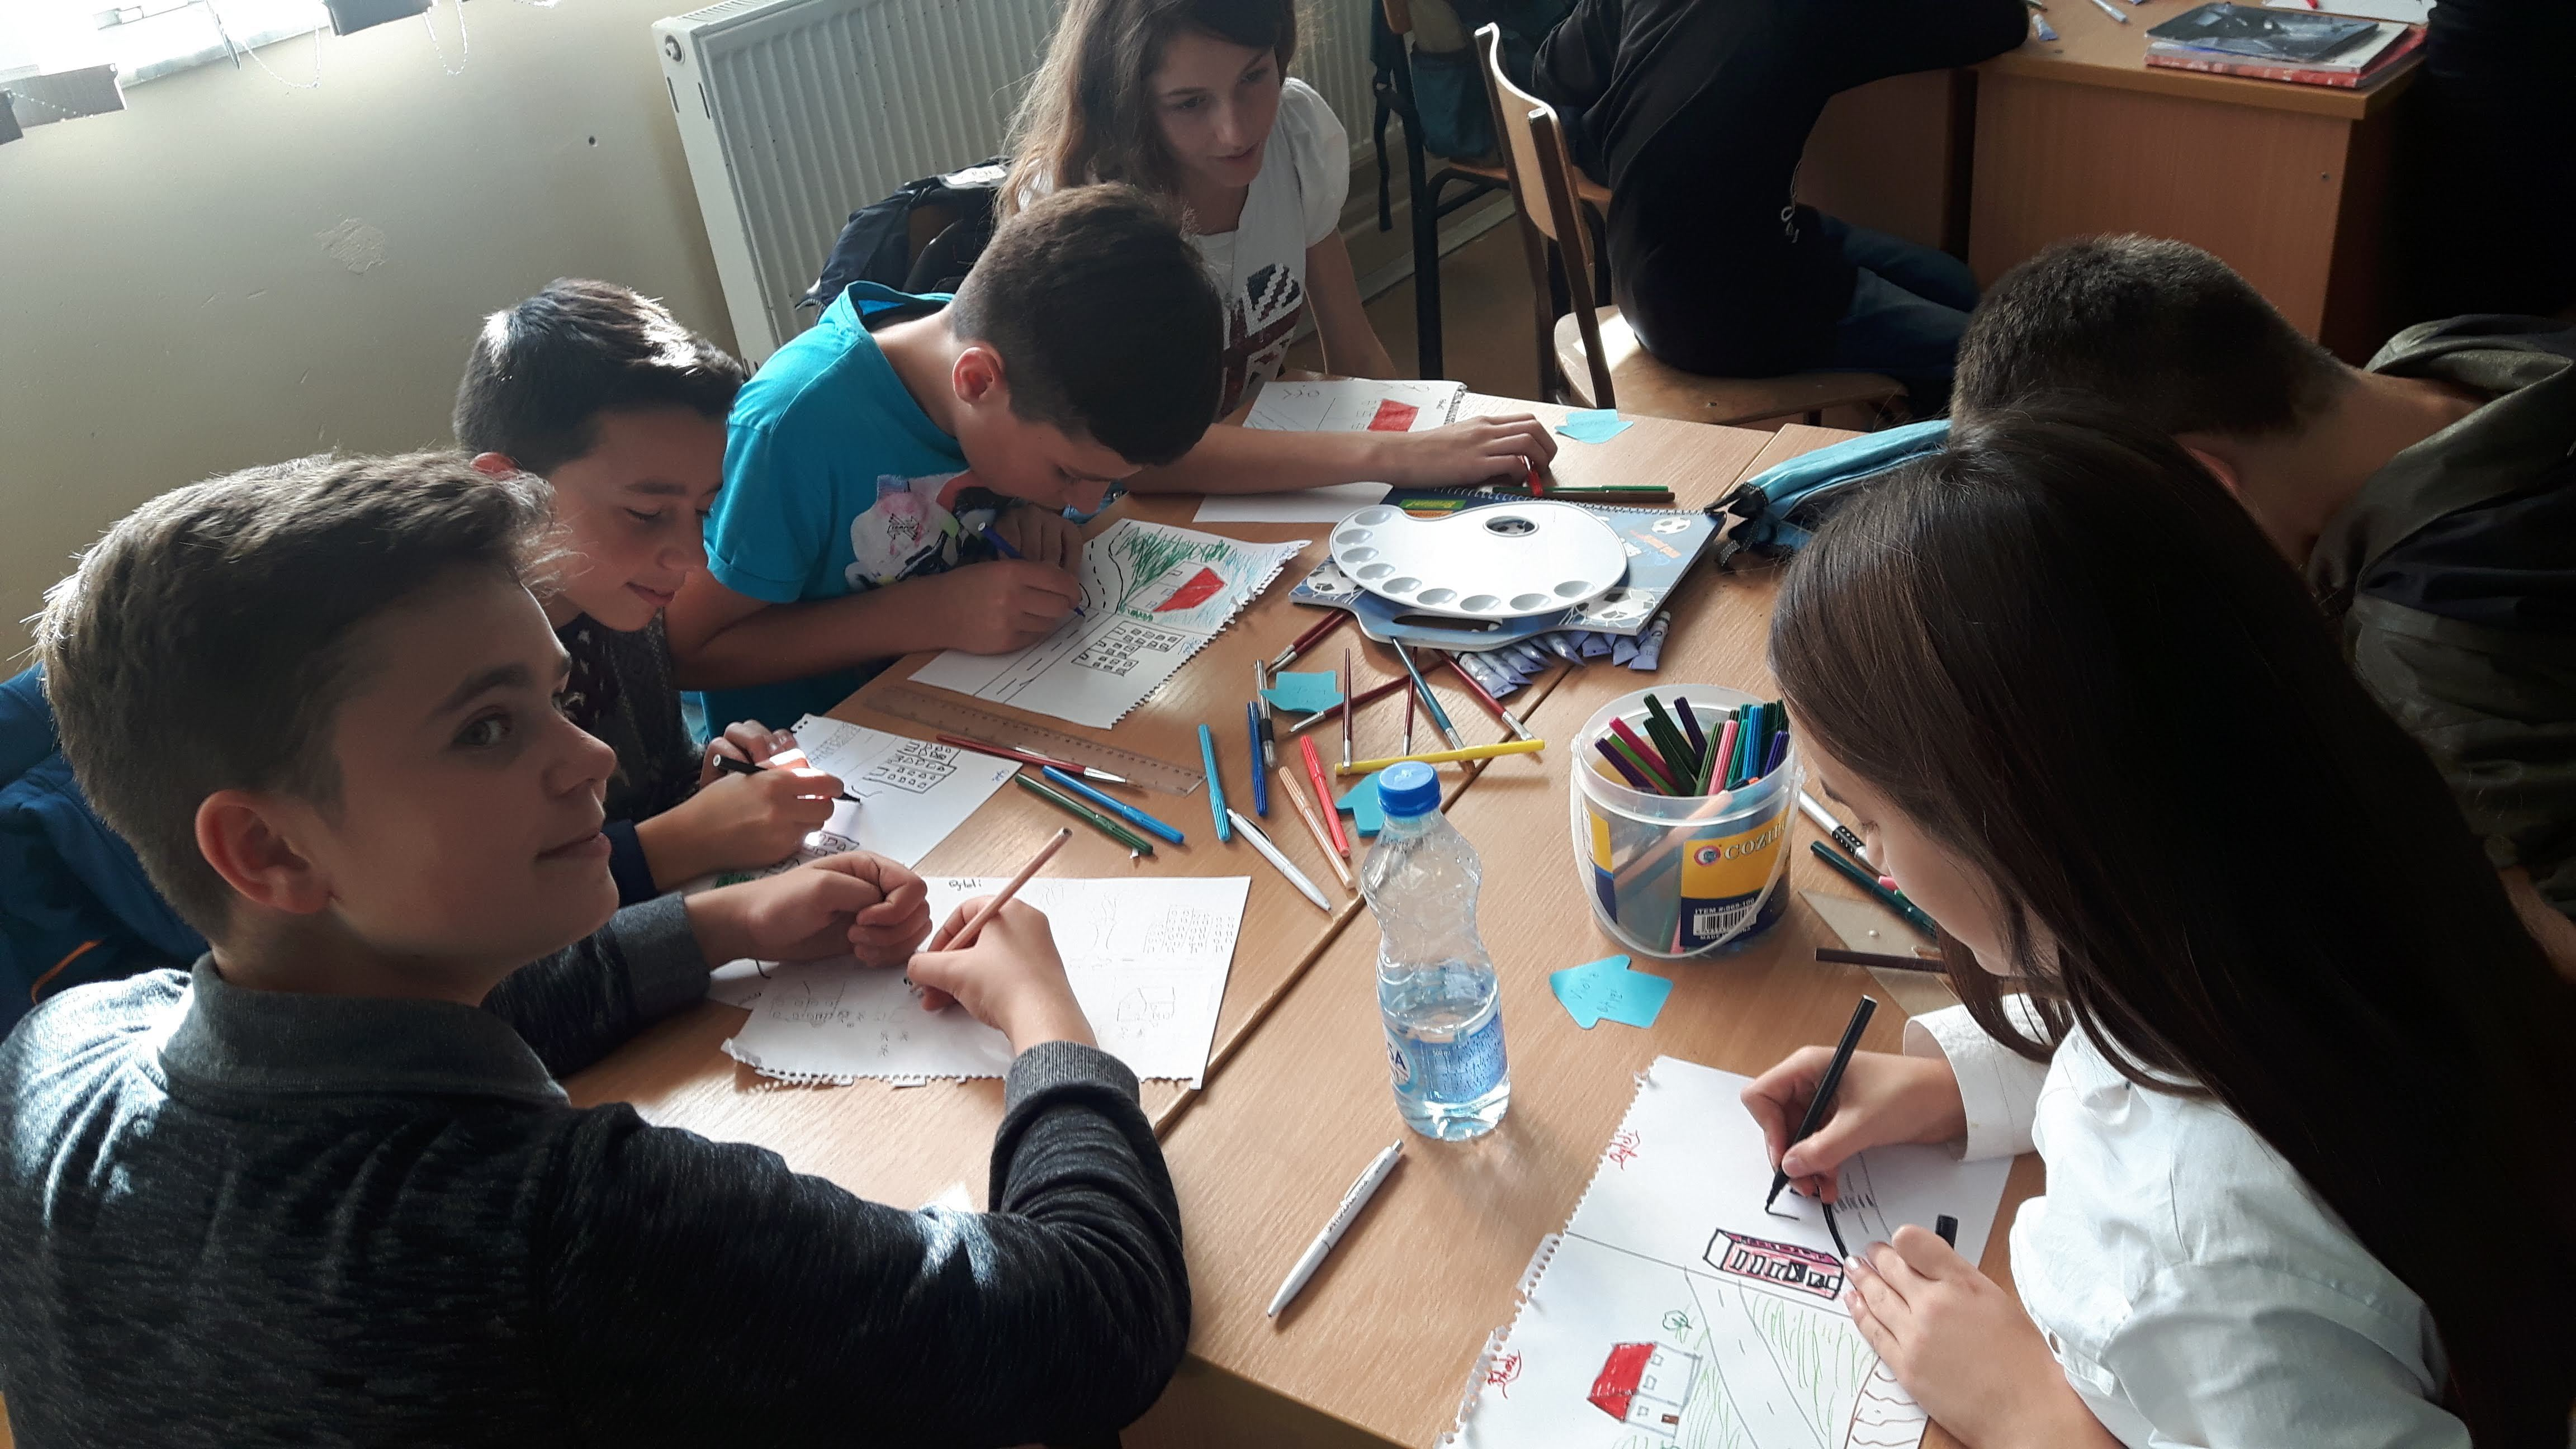 Kosova Students Painting The Issues That They See In Their Community